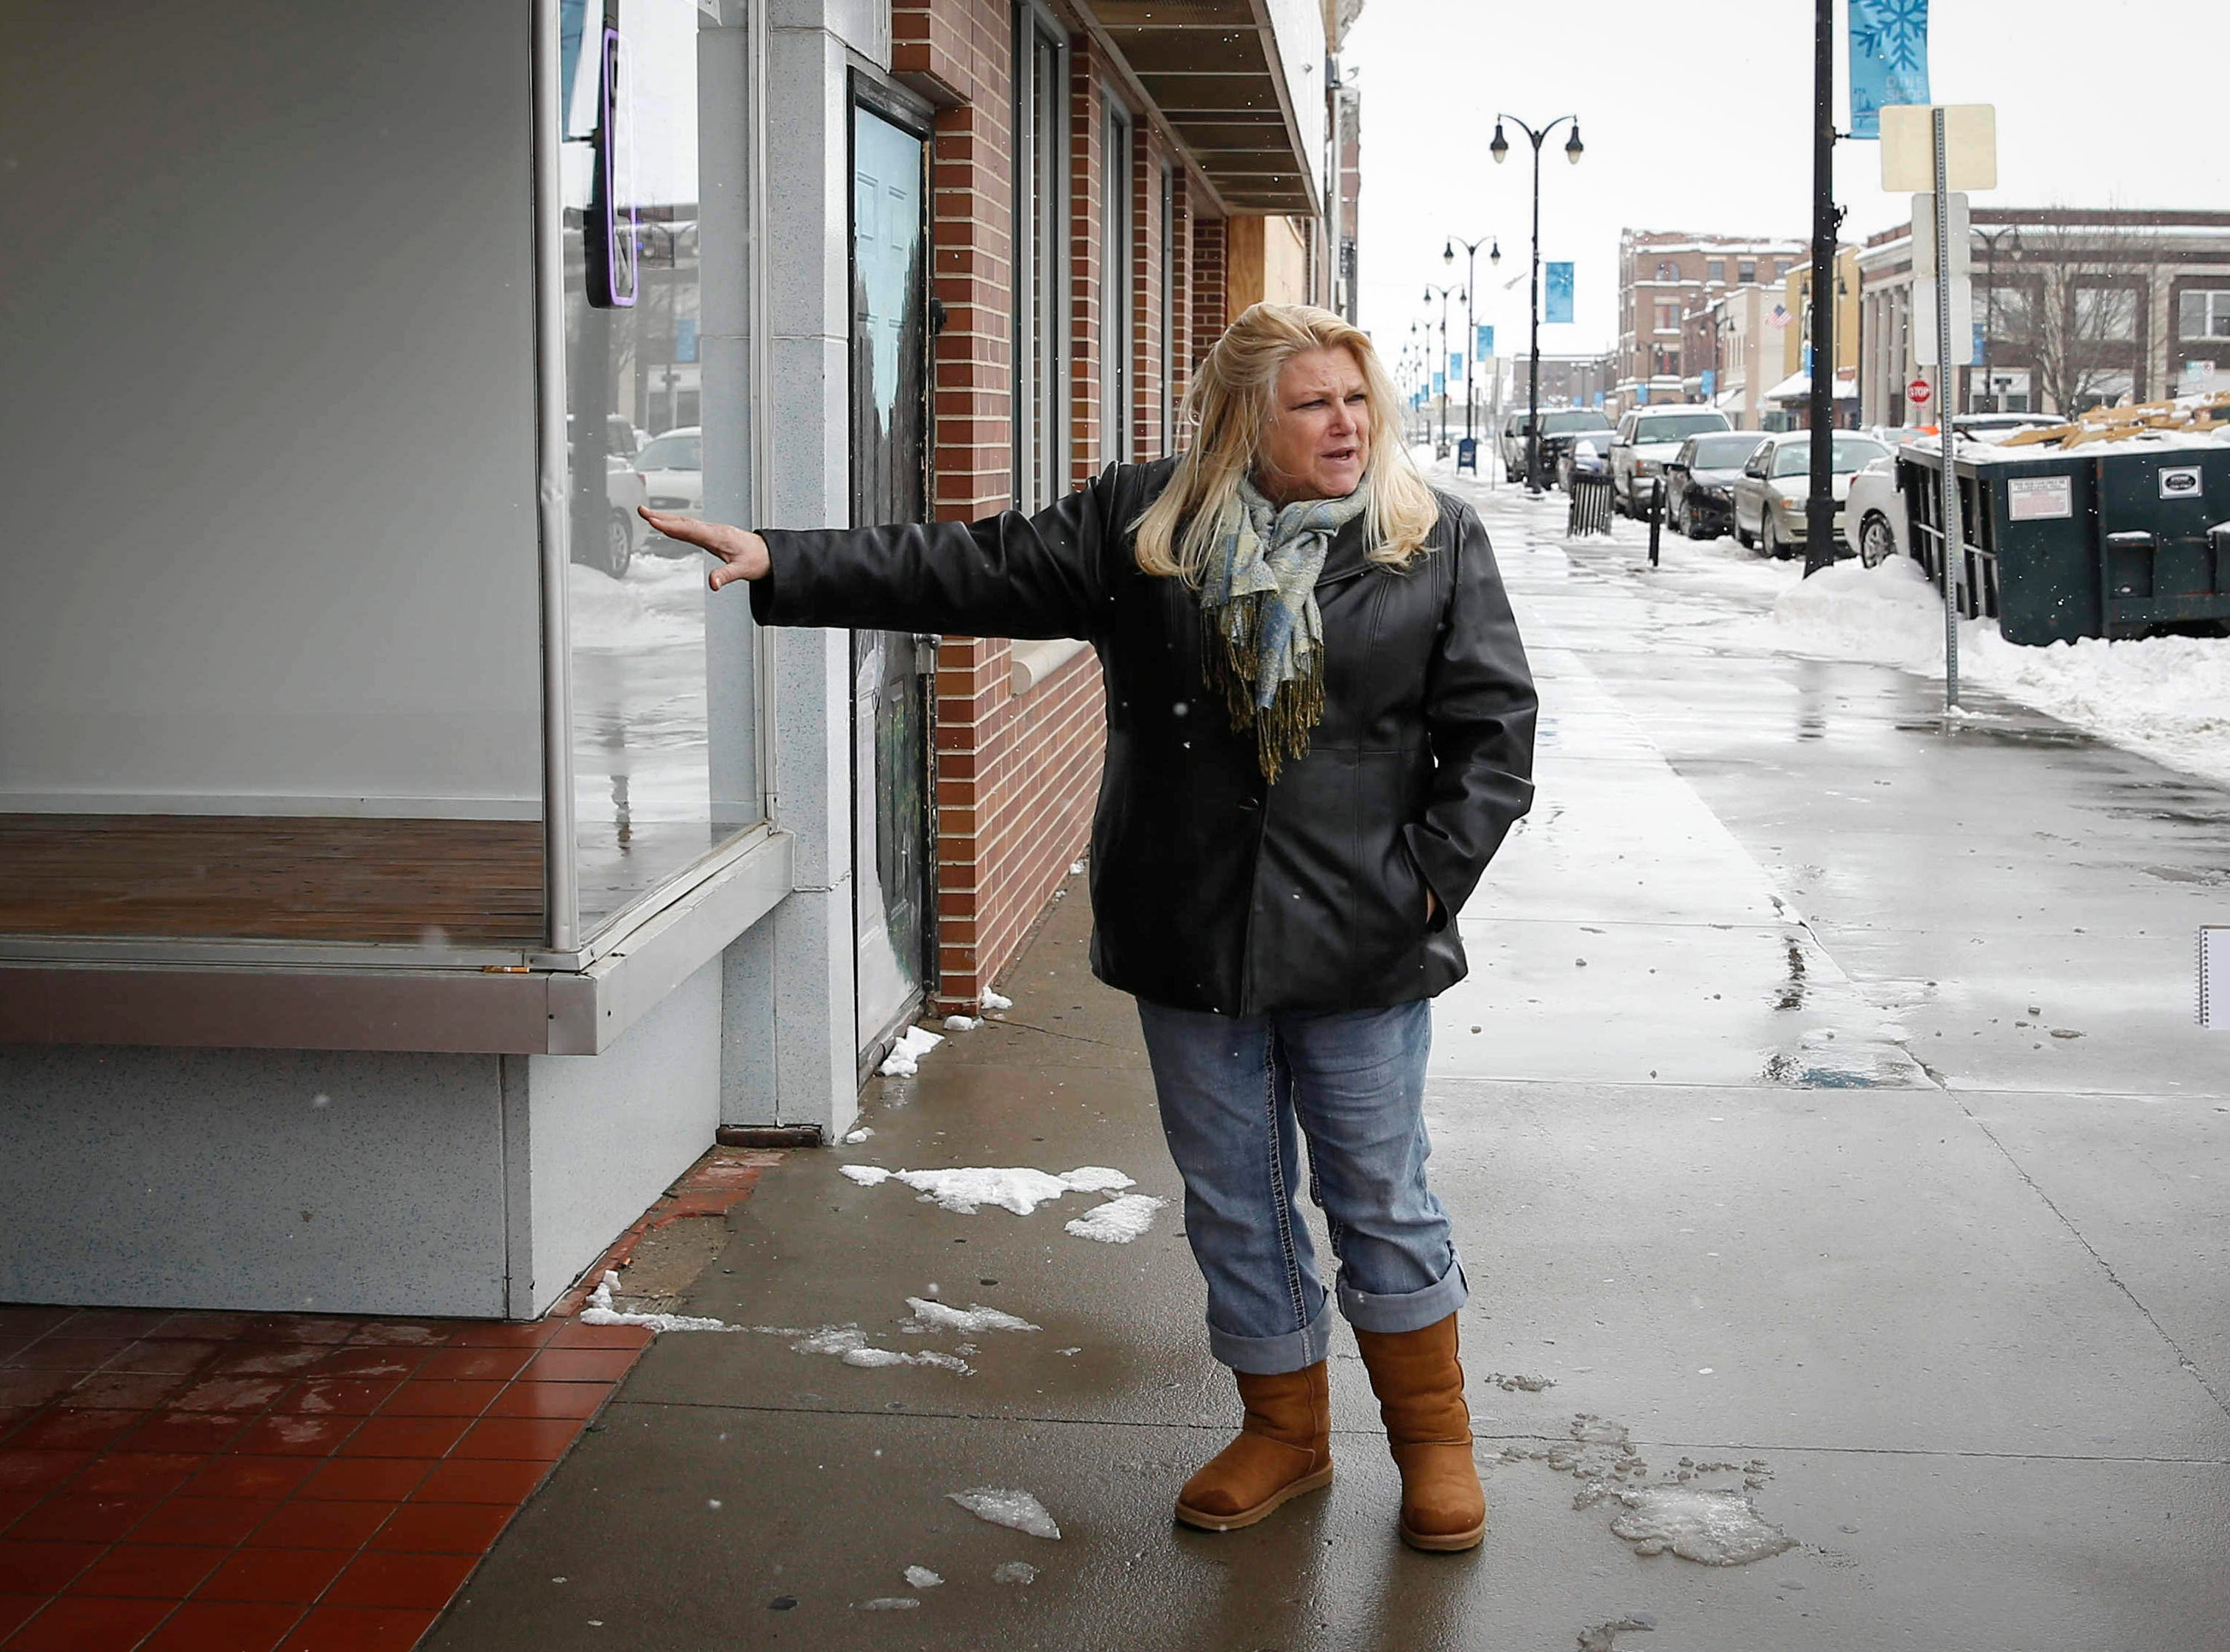 Jenny Etter, executive director of the Marshalltown Central Business District, gives a tour of Main Street on Wednesday, Feb. 20, 2019, in Marshalltown. On July 19, an EF-3 tornado ripped across downtown, toppling buildings and causing more than $1 million in property damage.